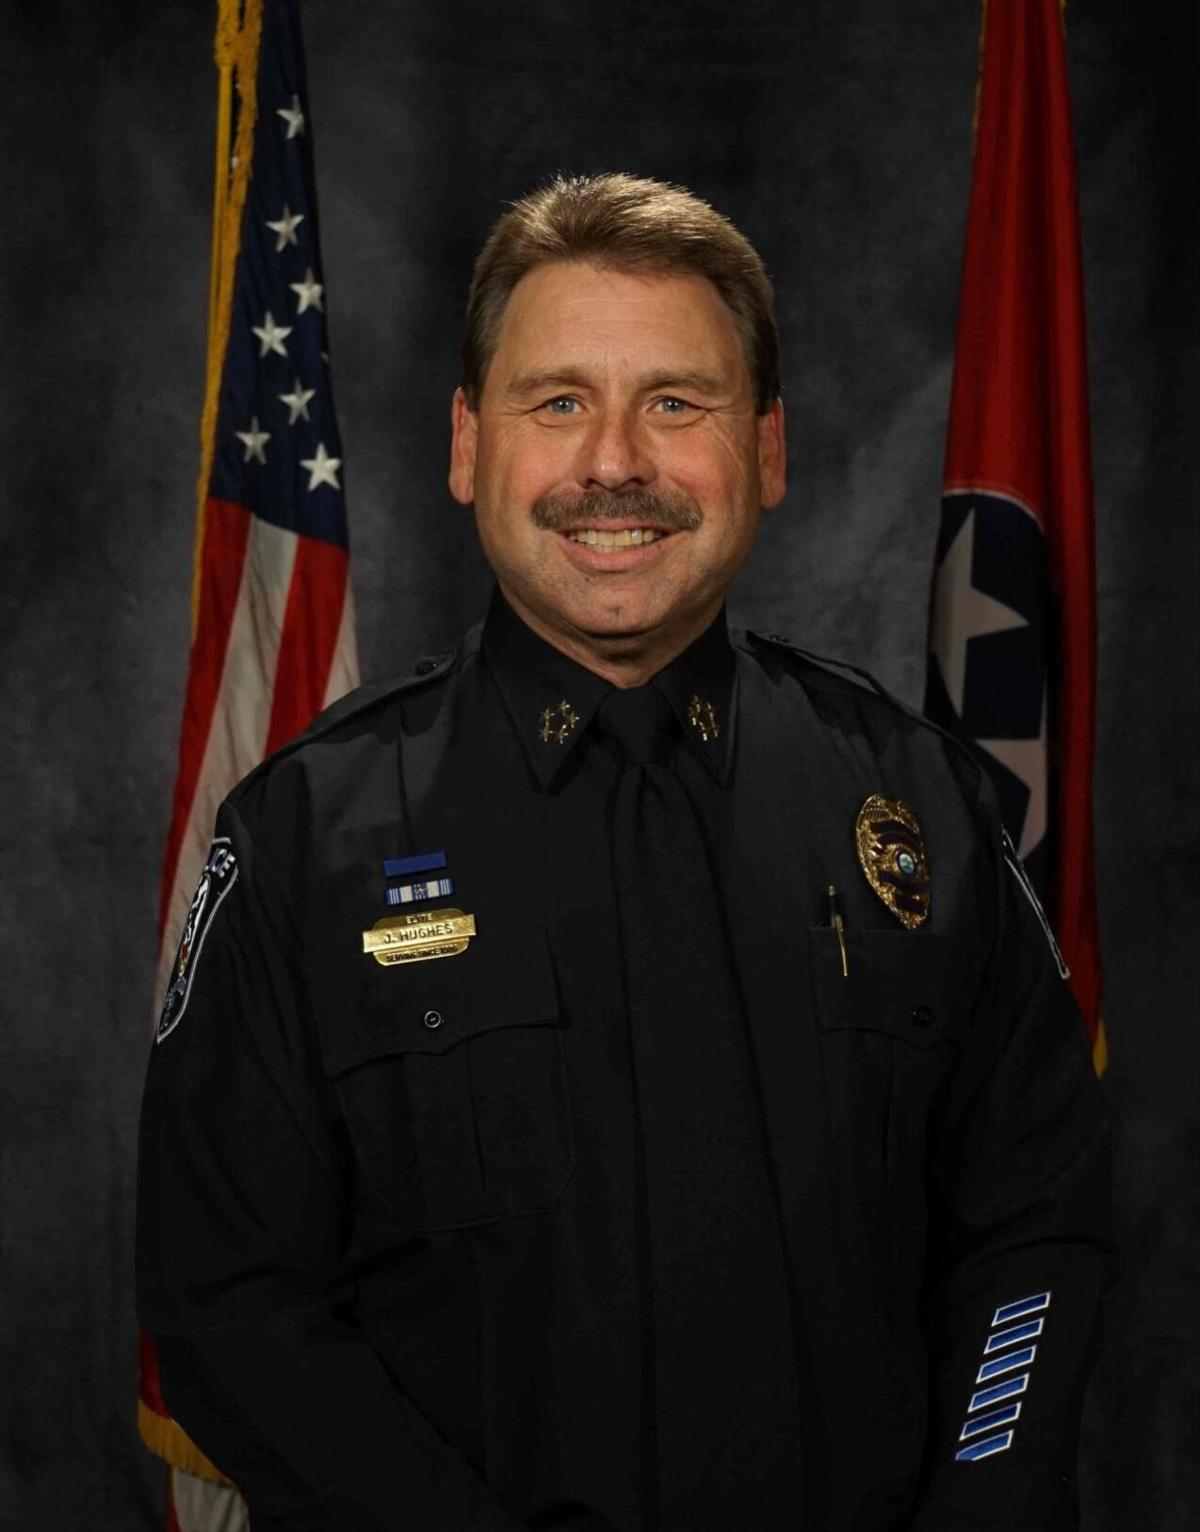 Brentwood Police Department Chief of Police Jeff Hughes